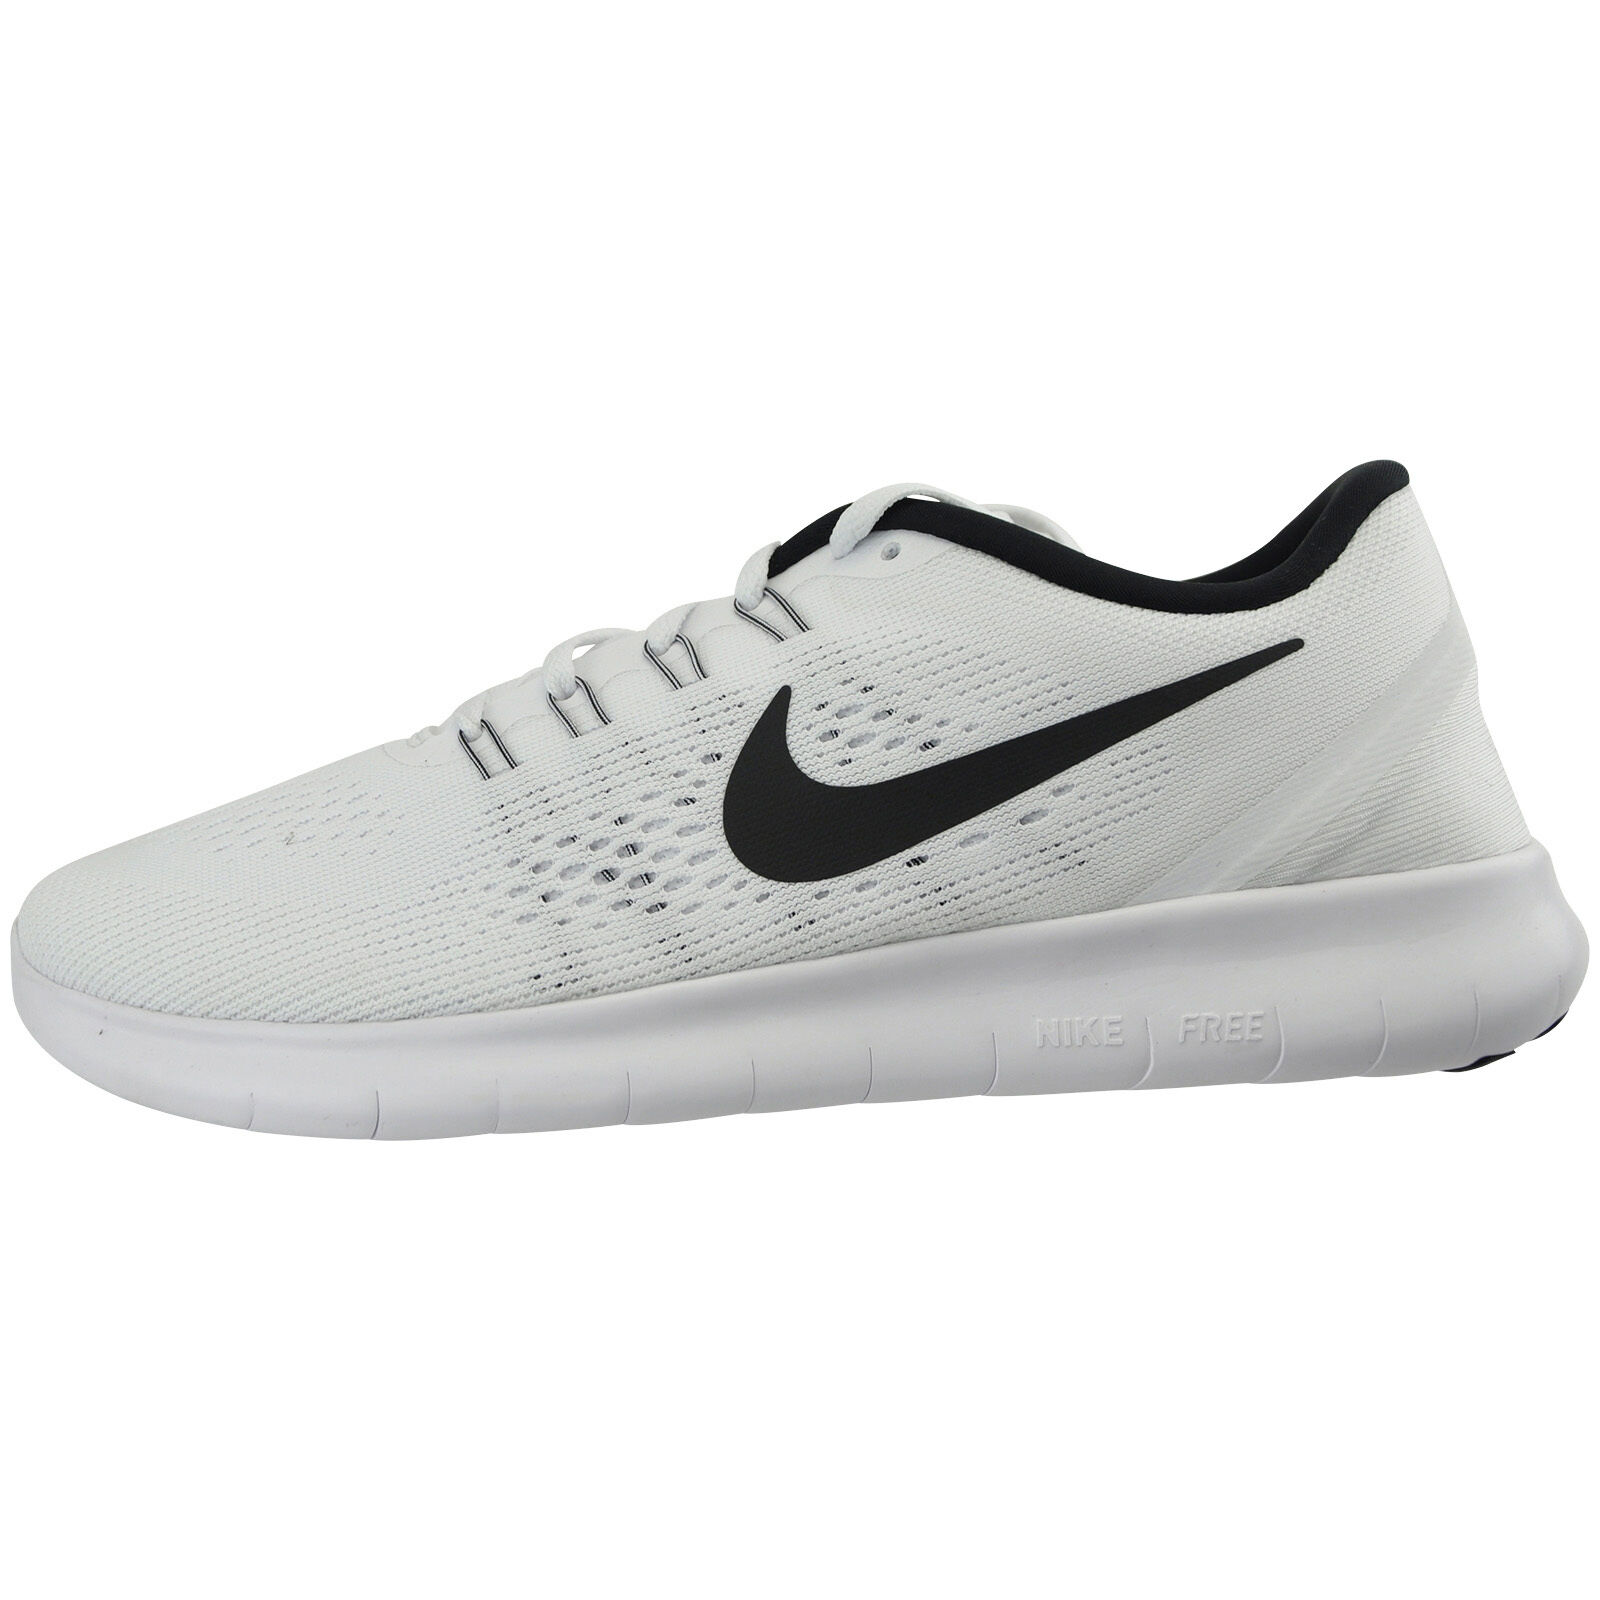 WMNS Nike Free RN 831509-100 Lifestyle Running Shoes Casual Trainers